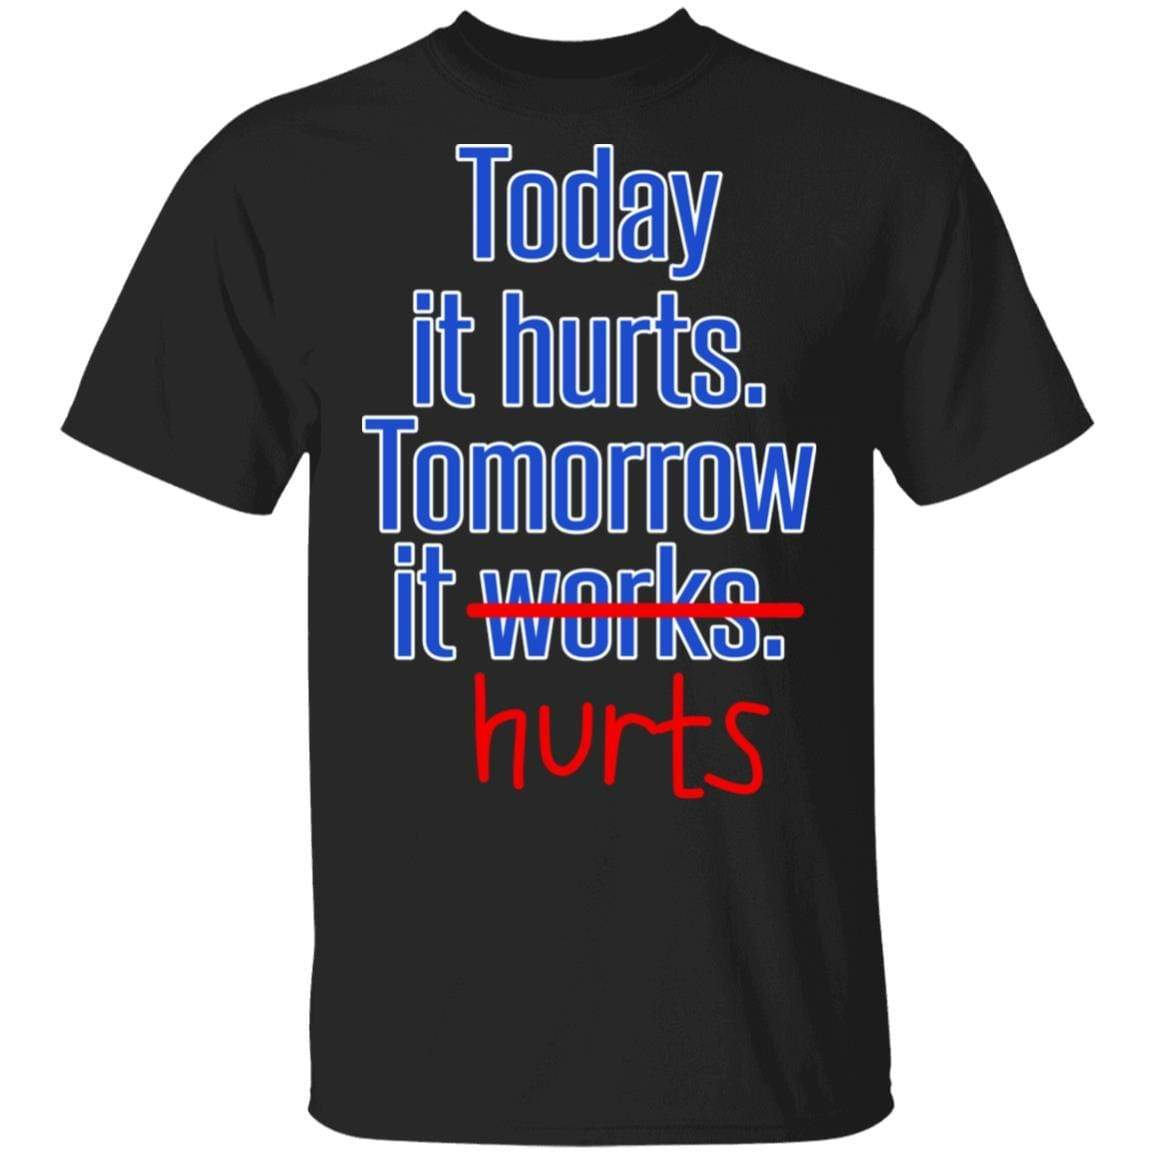 Today Is Hurts Tomorrow It Hurts T-Shirts, Hoodies 1049-9953-88445014-48144 - Tee Ript